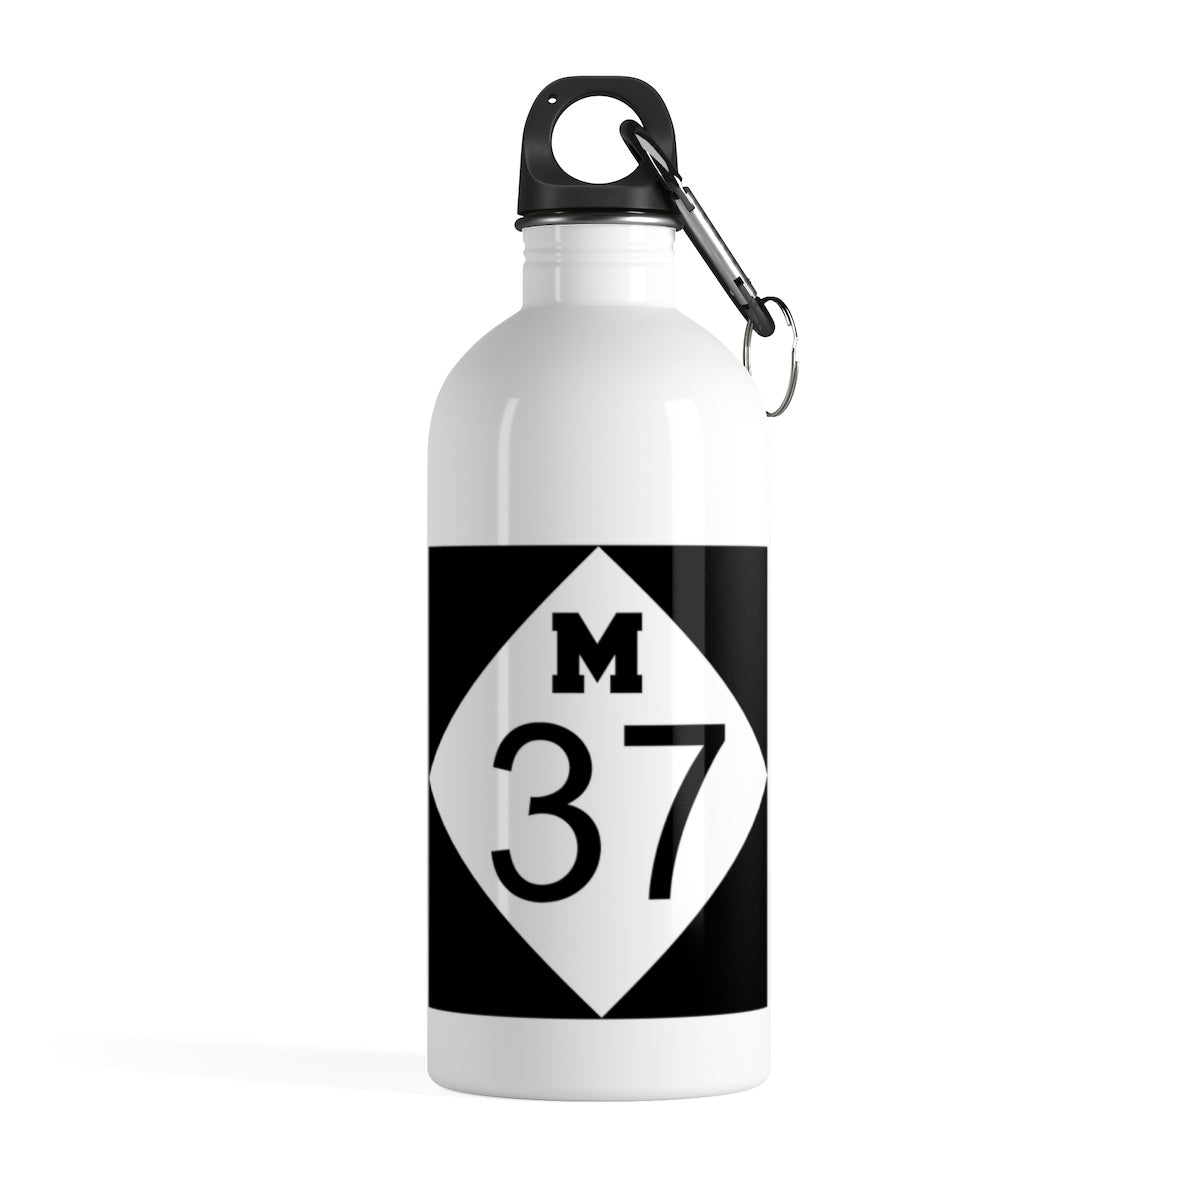 M37 White Stainless Steel Water Bottle